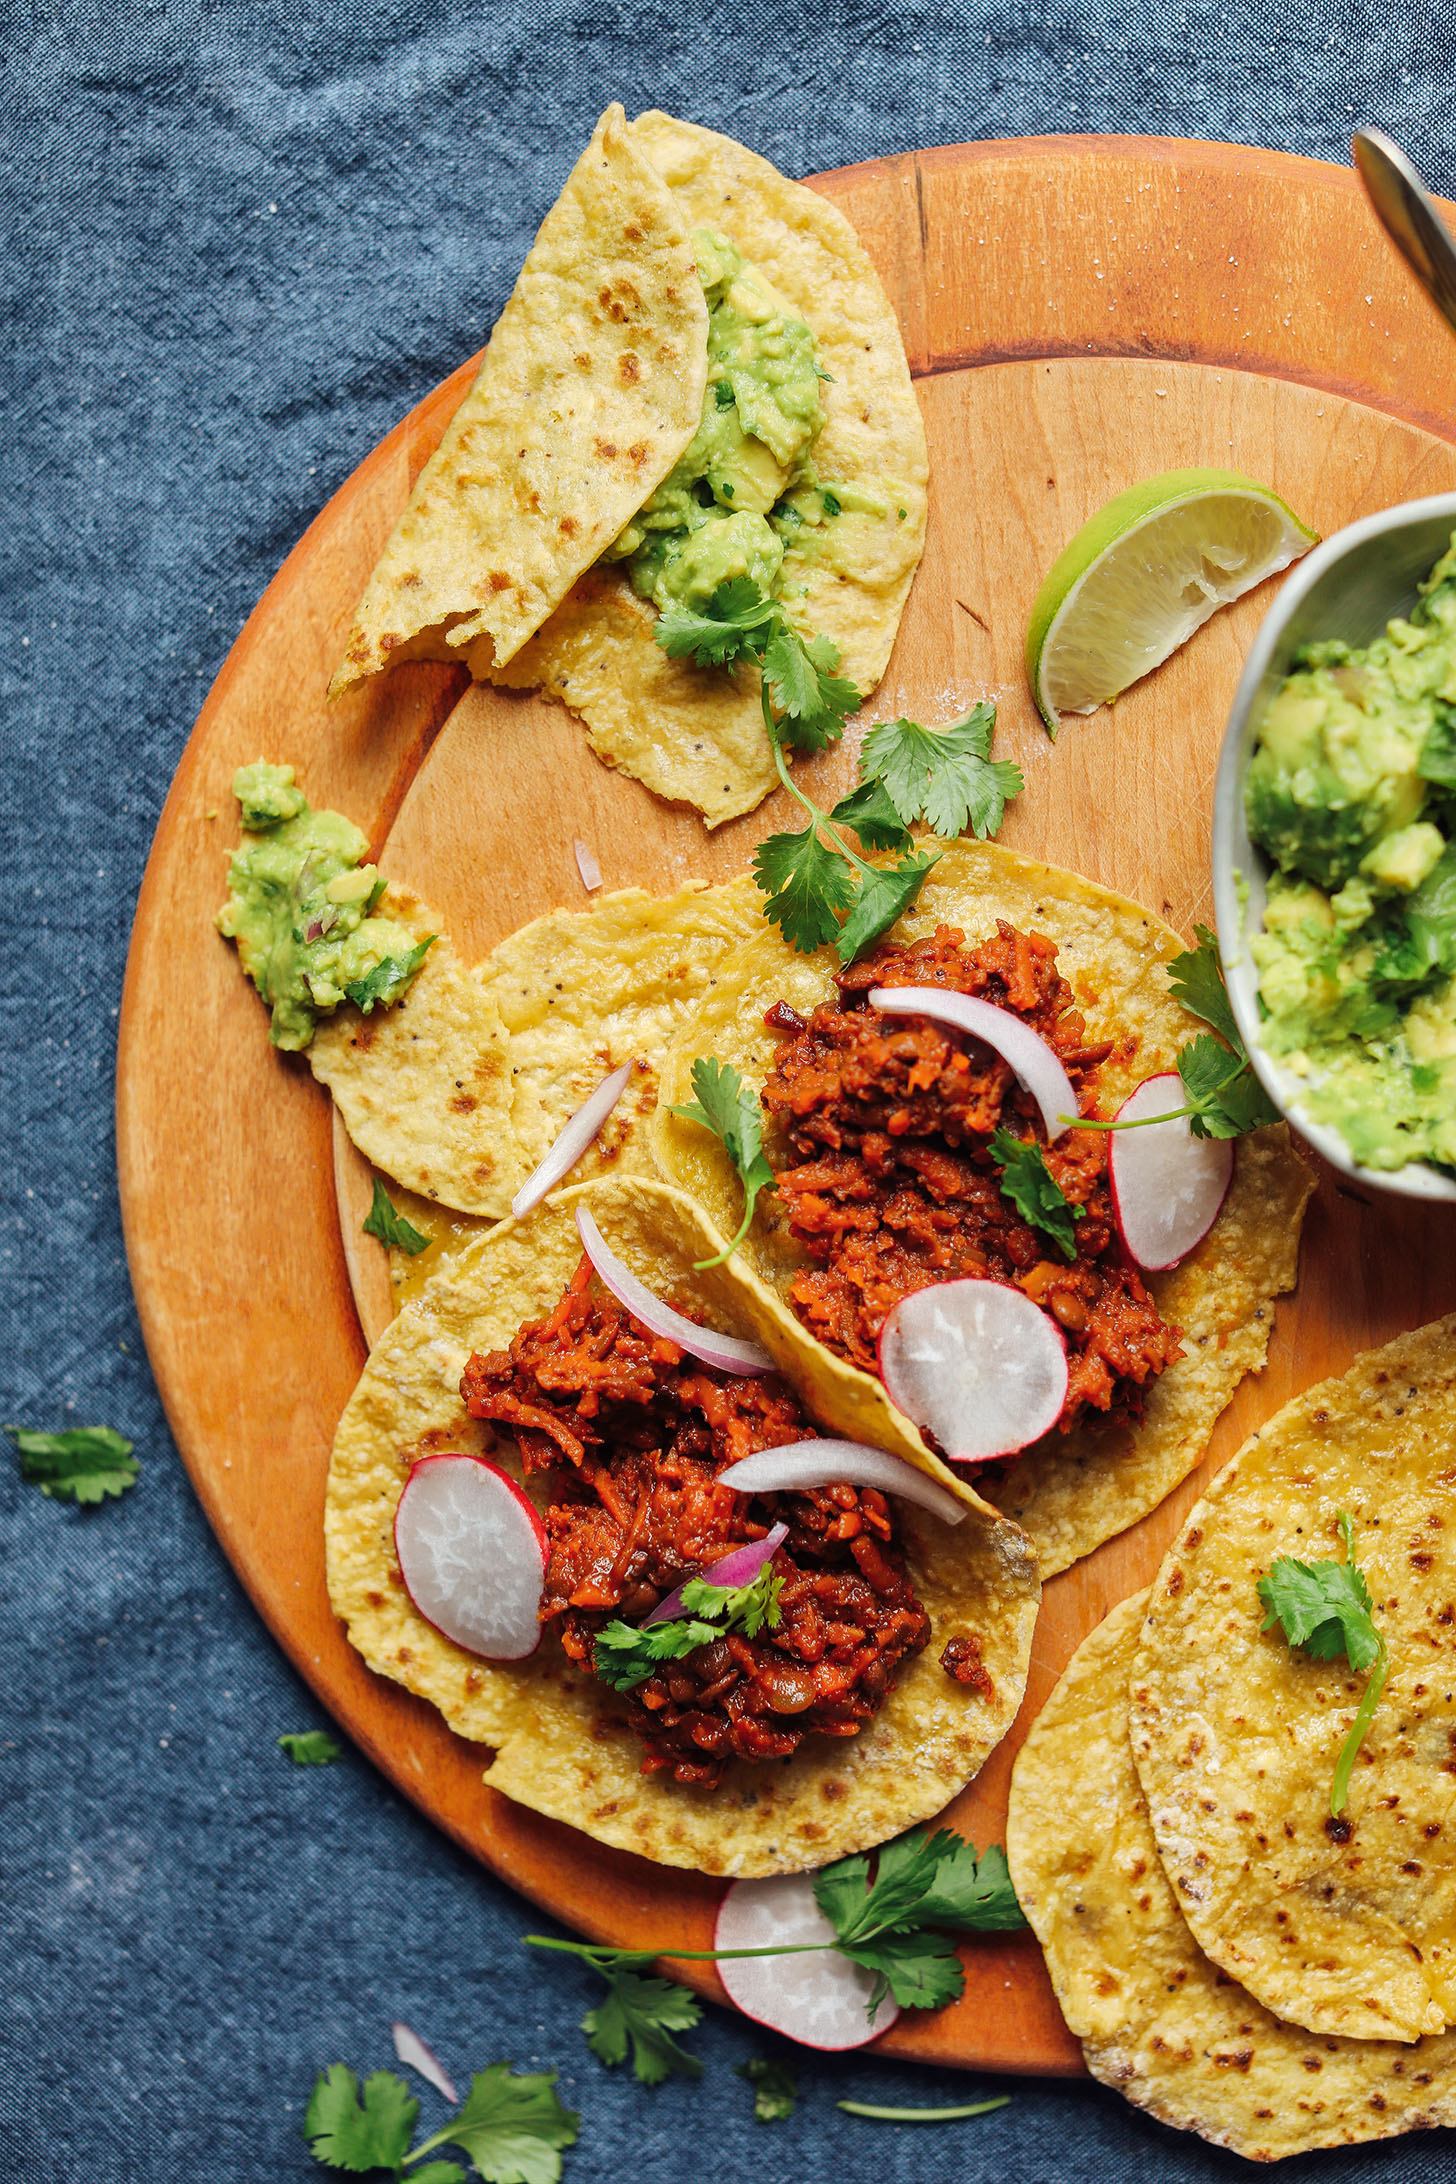 Cutting board with grain-free Plantain Tortillas filled with Barbacoa Lentils and guacamole